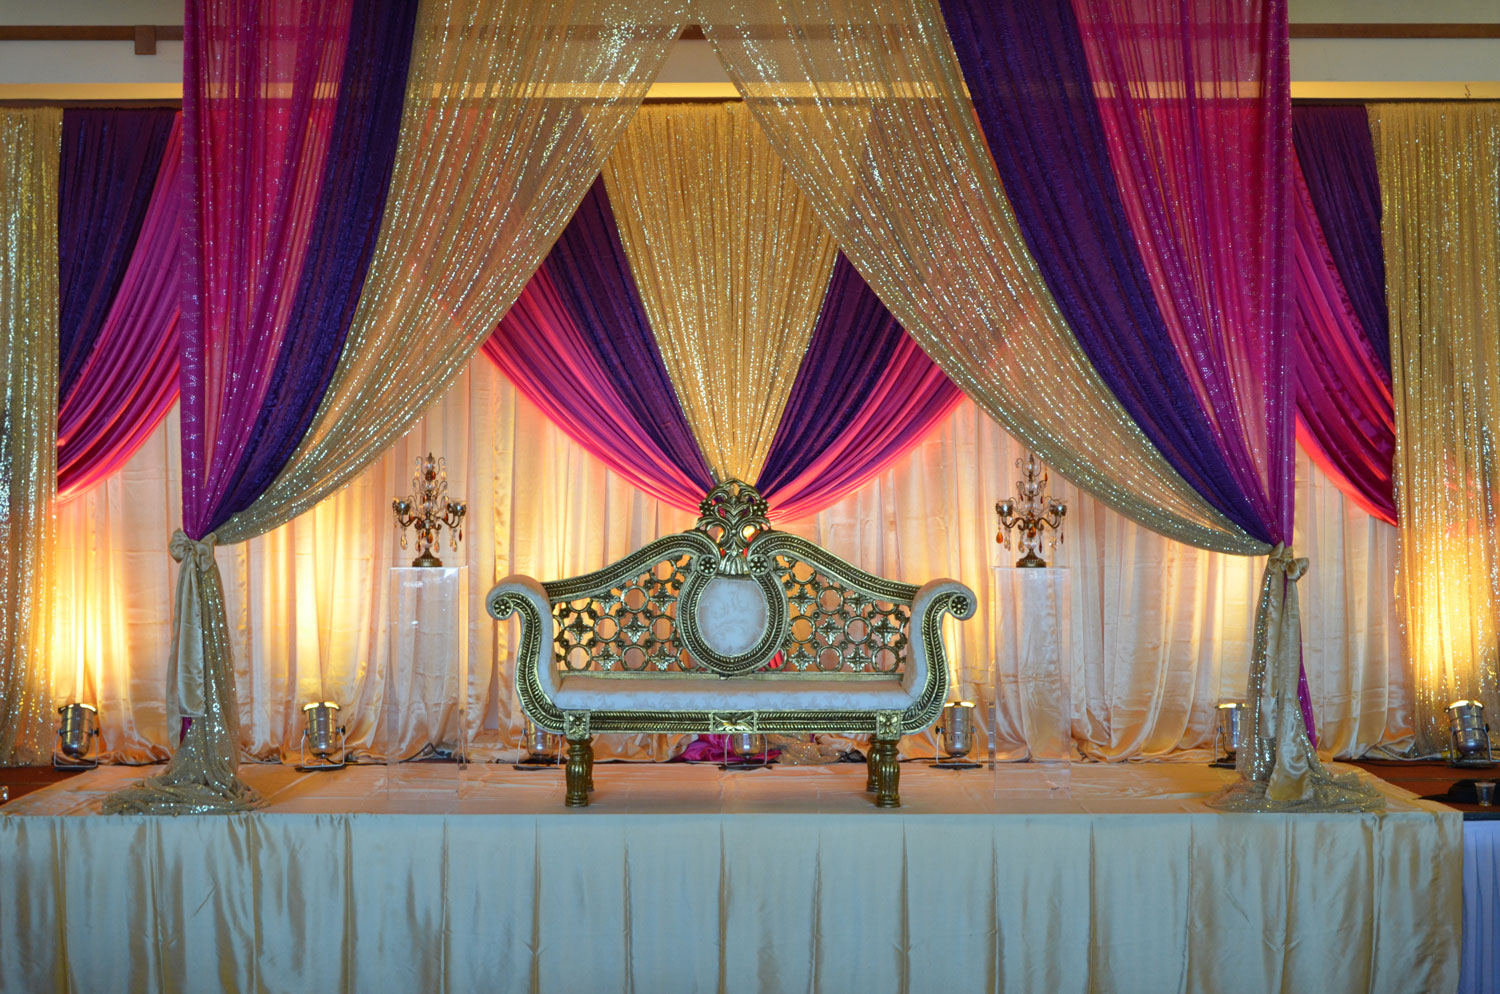 Engagement decor - decorations - lighting - backdrop - canopy - moroccan - banquet hall